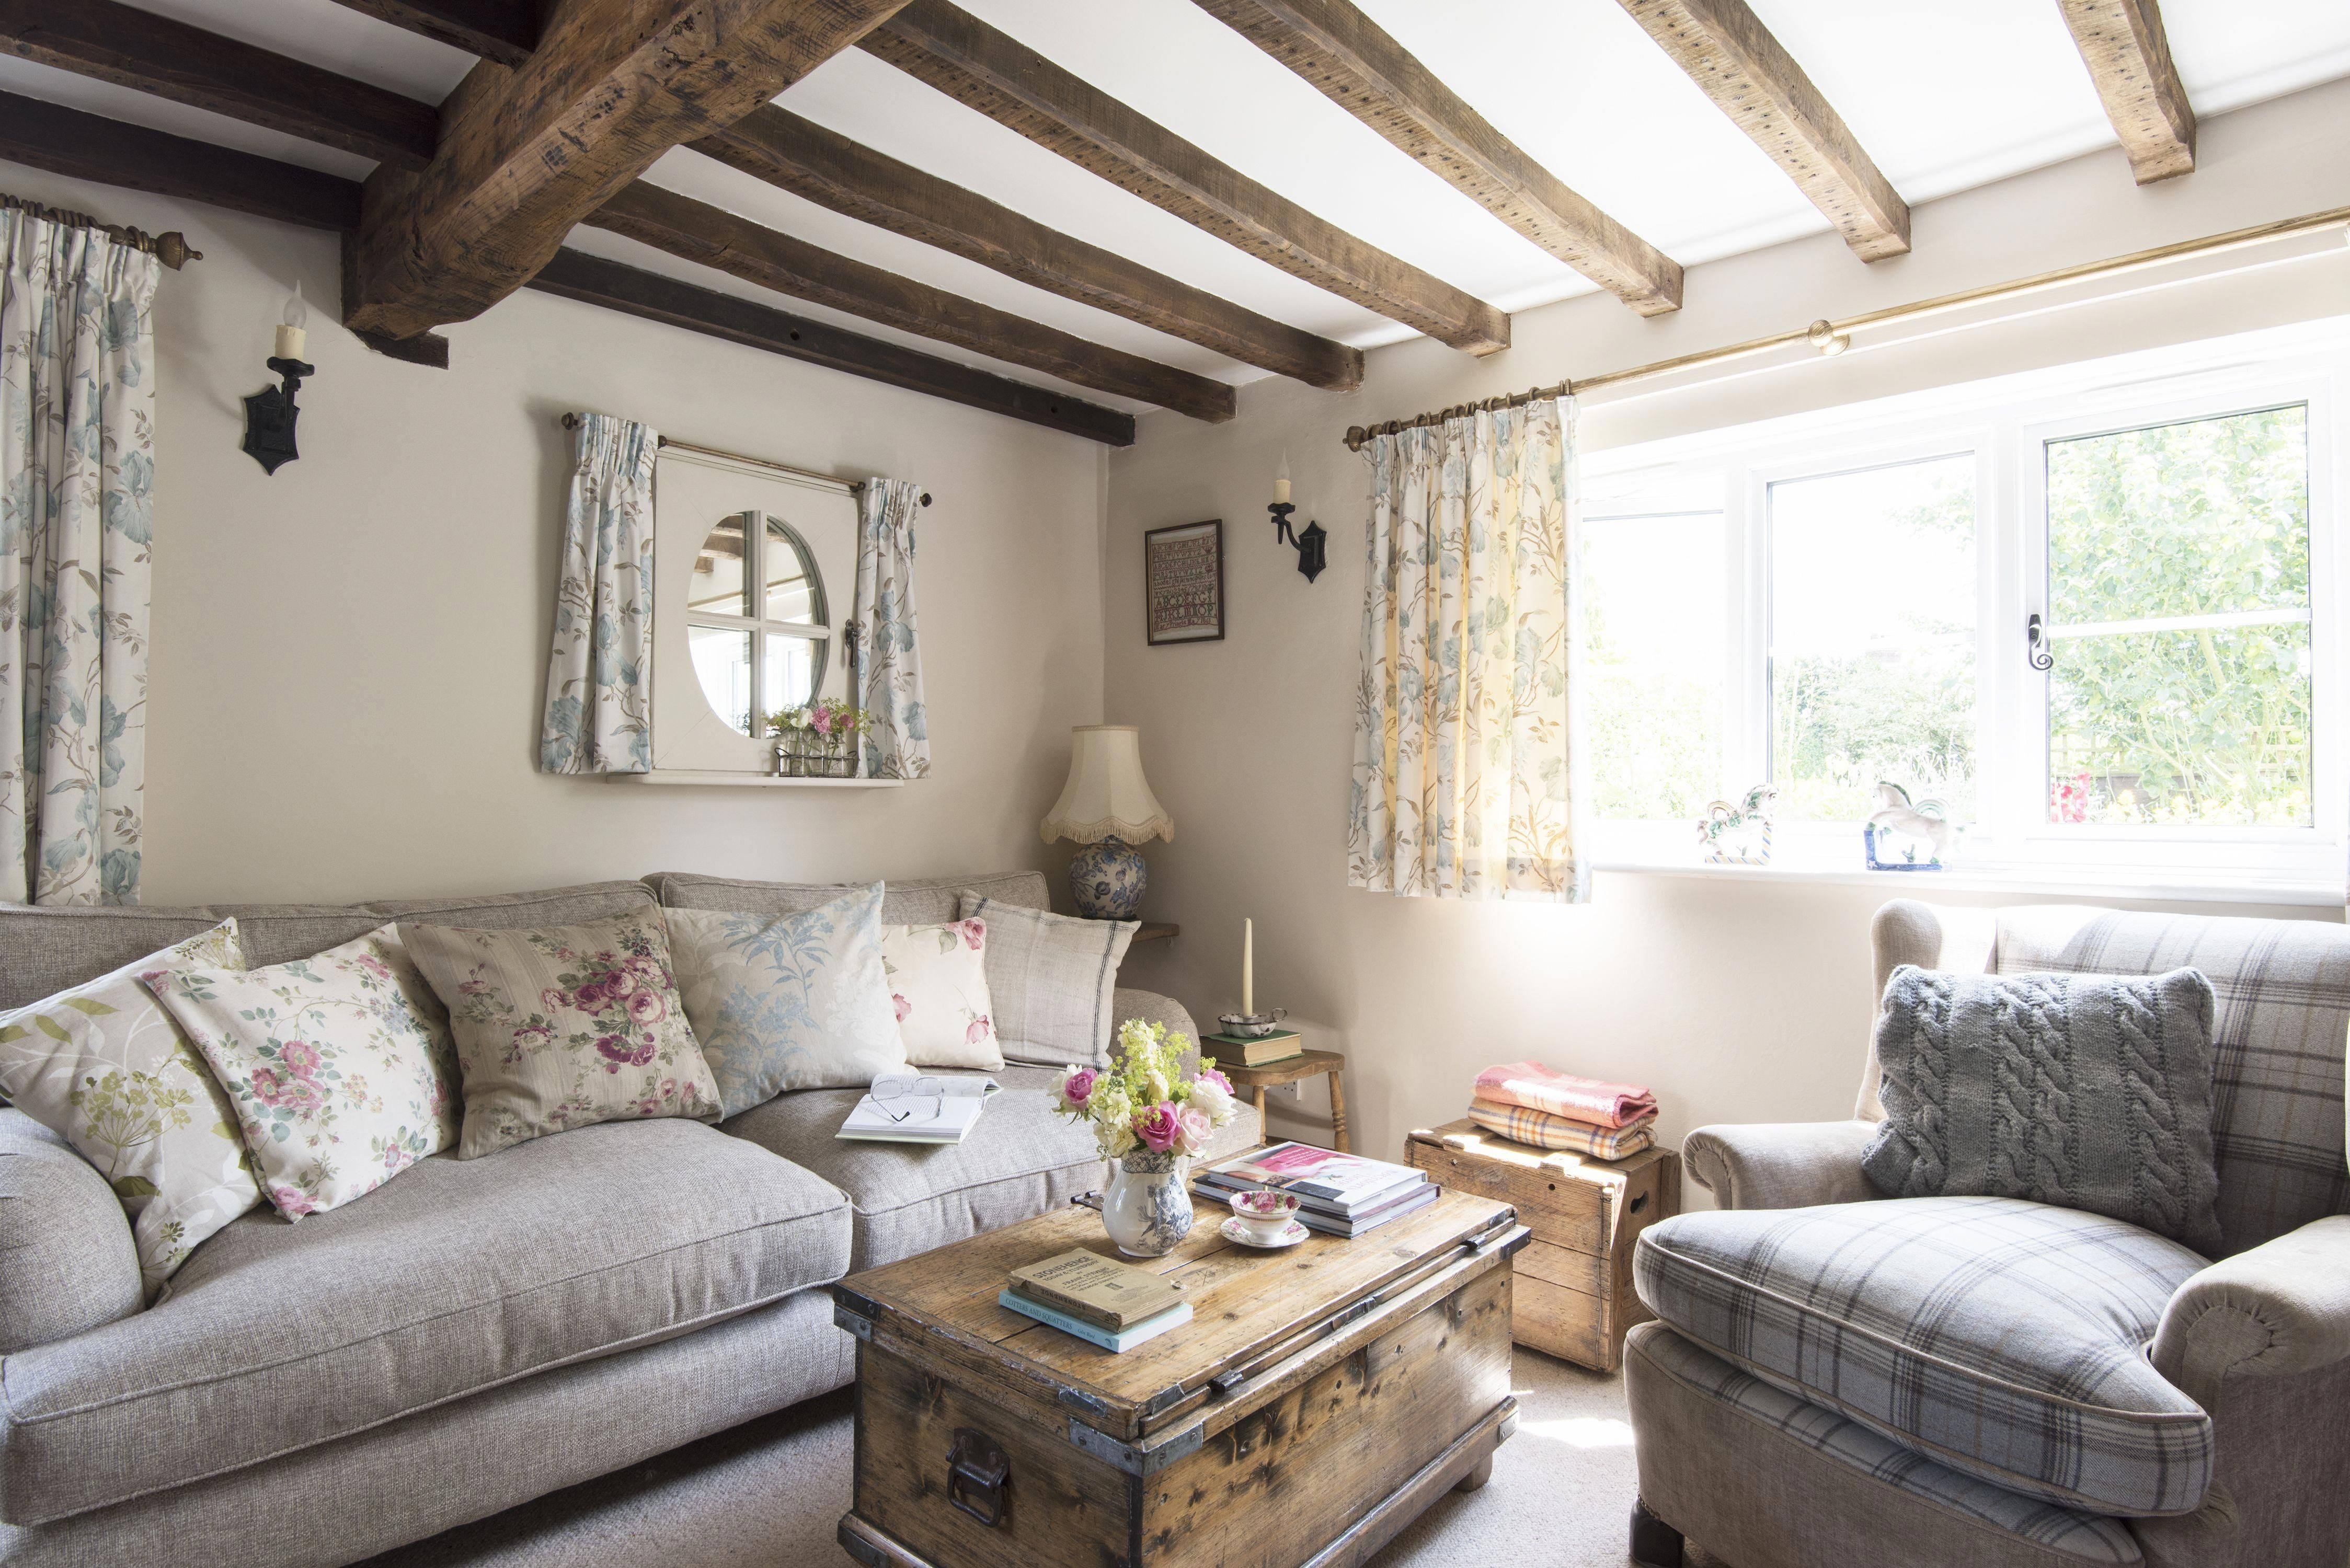 Astounding Country Cottage Furniture Look At Our Blog For A Whole Lot More Good Ideas Co Cottage Living Rooms Country Cottage Interiors Country House Decor